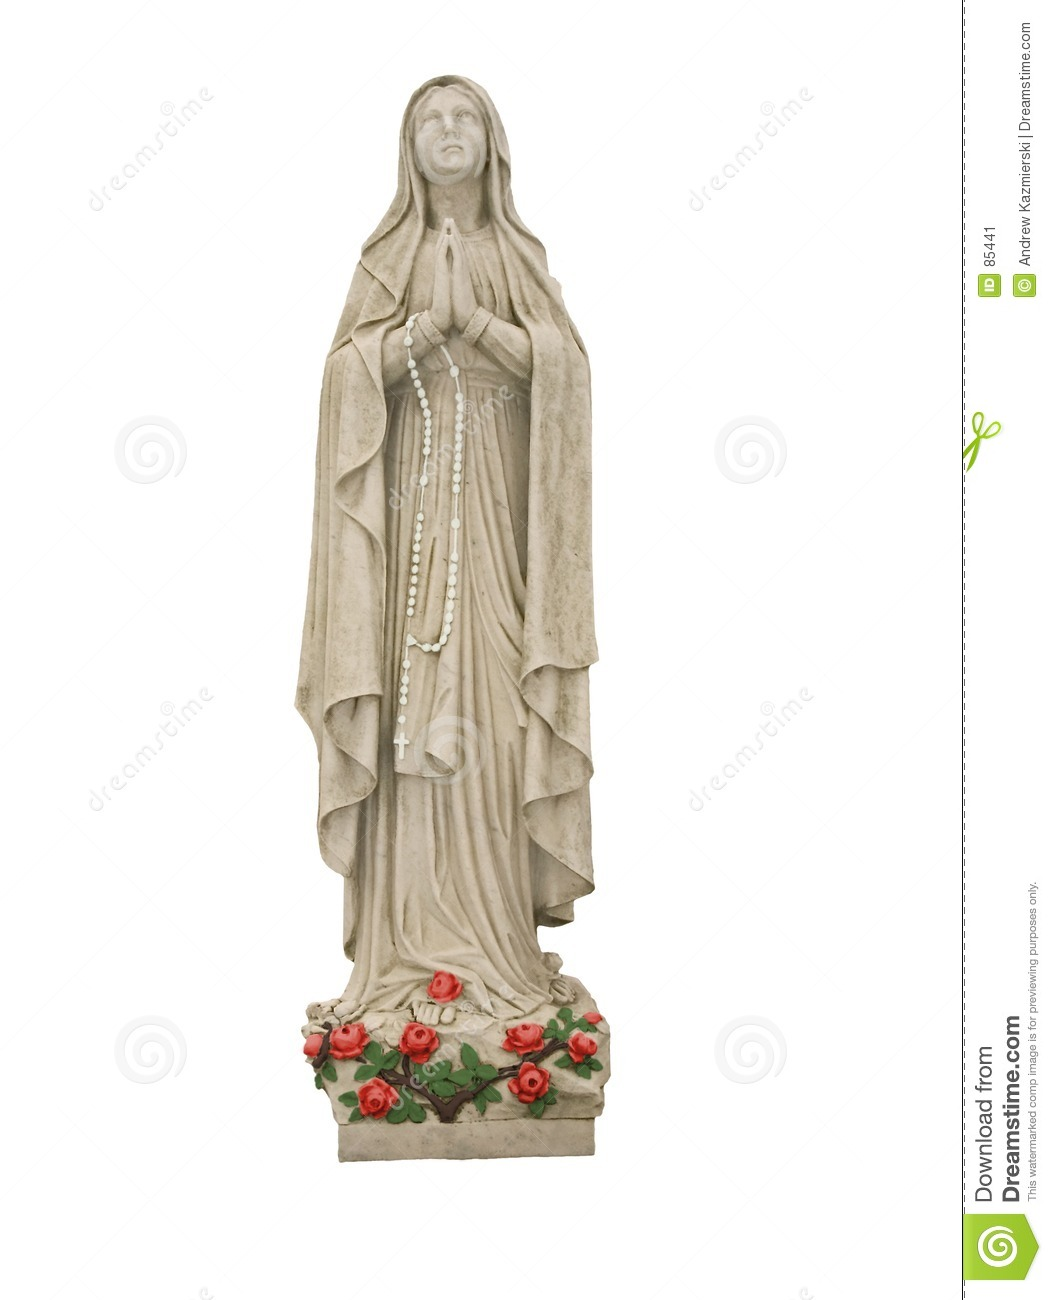 Mary With Roses And White Rosary Beads Stock Image.